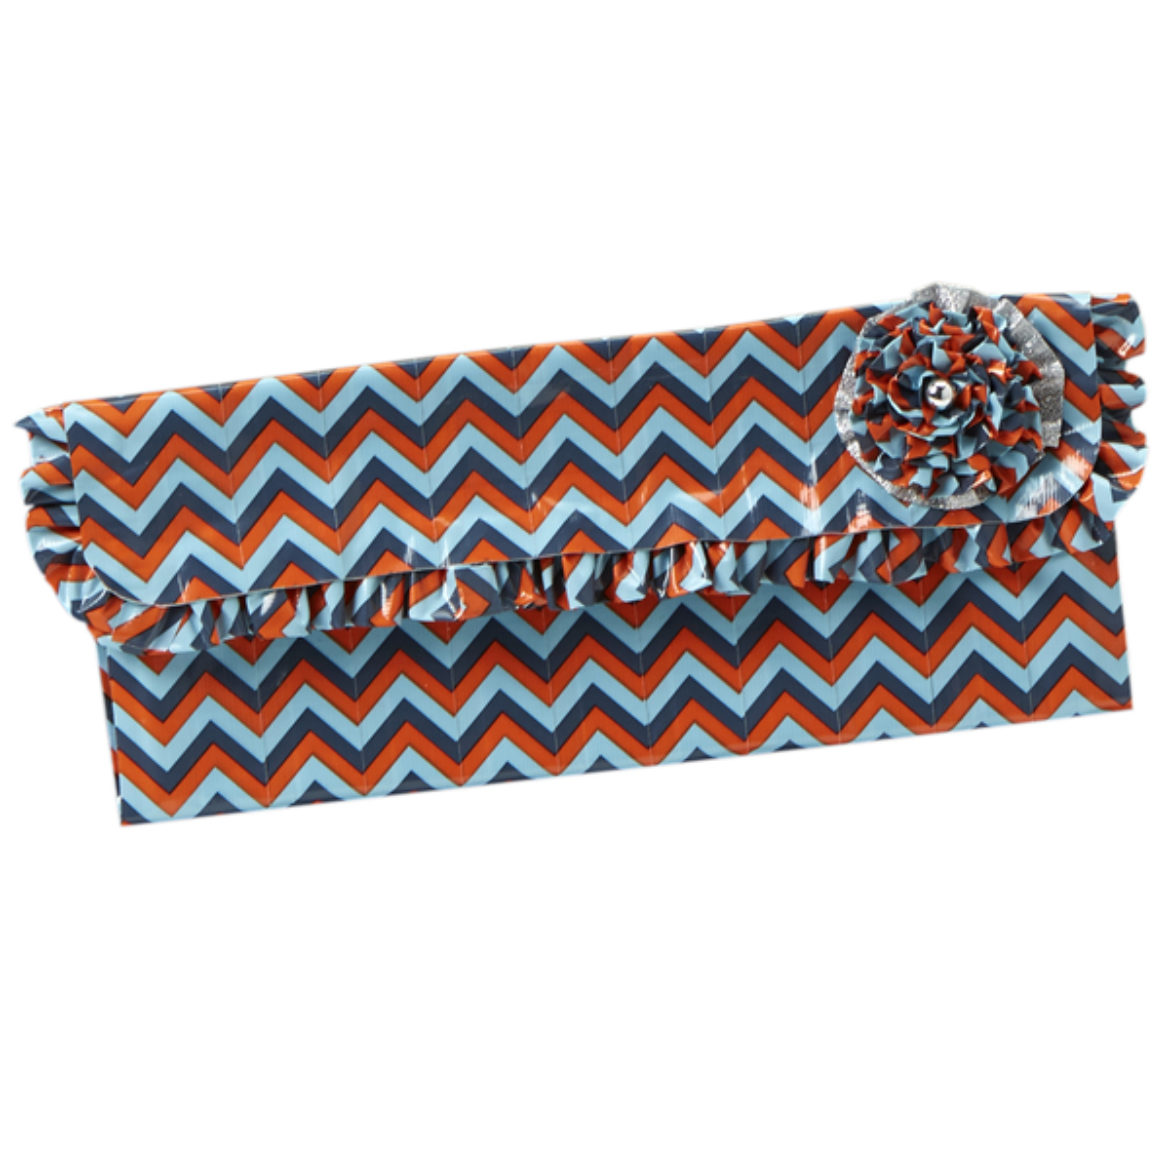 Completed Duck Tape Ruffled Clutch